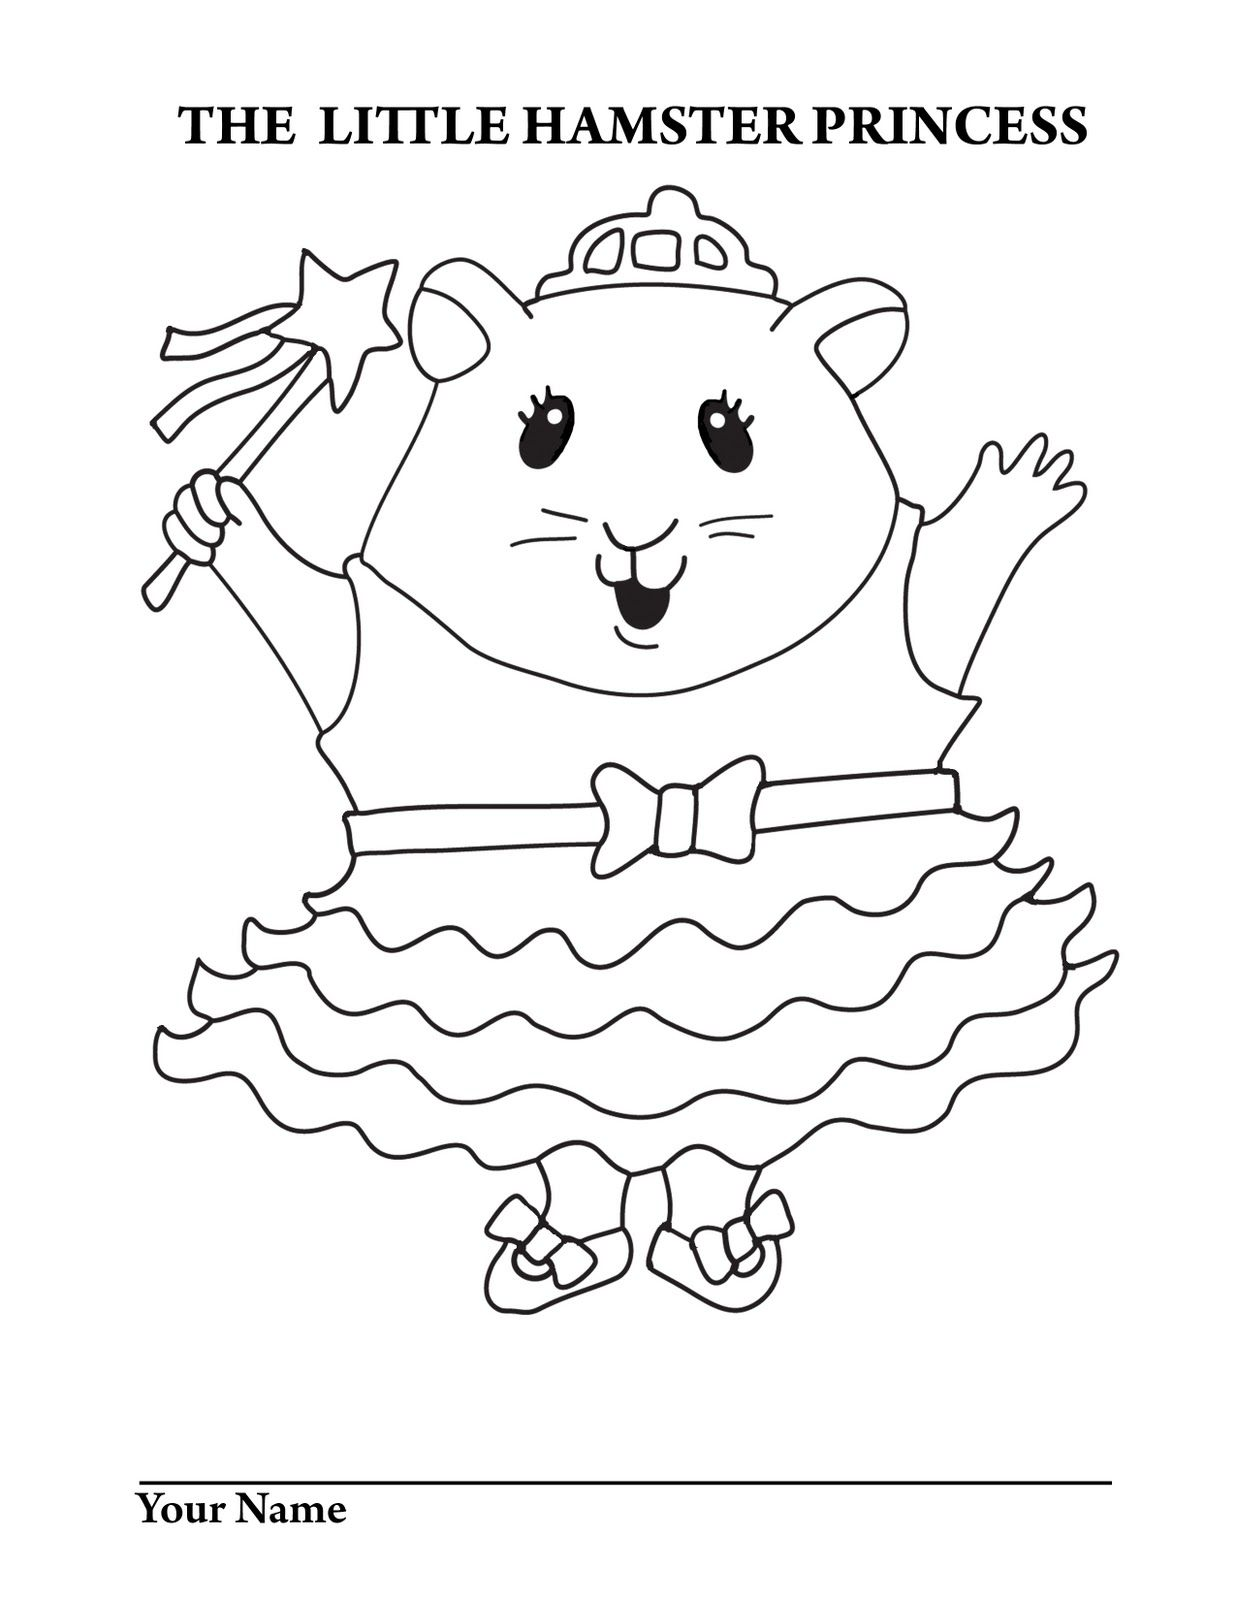 Little princess coloring pages - Pet Shop Coloring Pages Printable Coloring Pages Littlest Pet Shop Little Hamster Princess Coloring Page